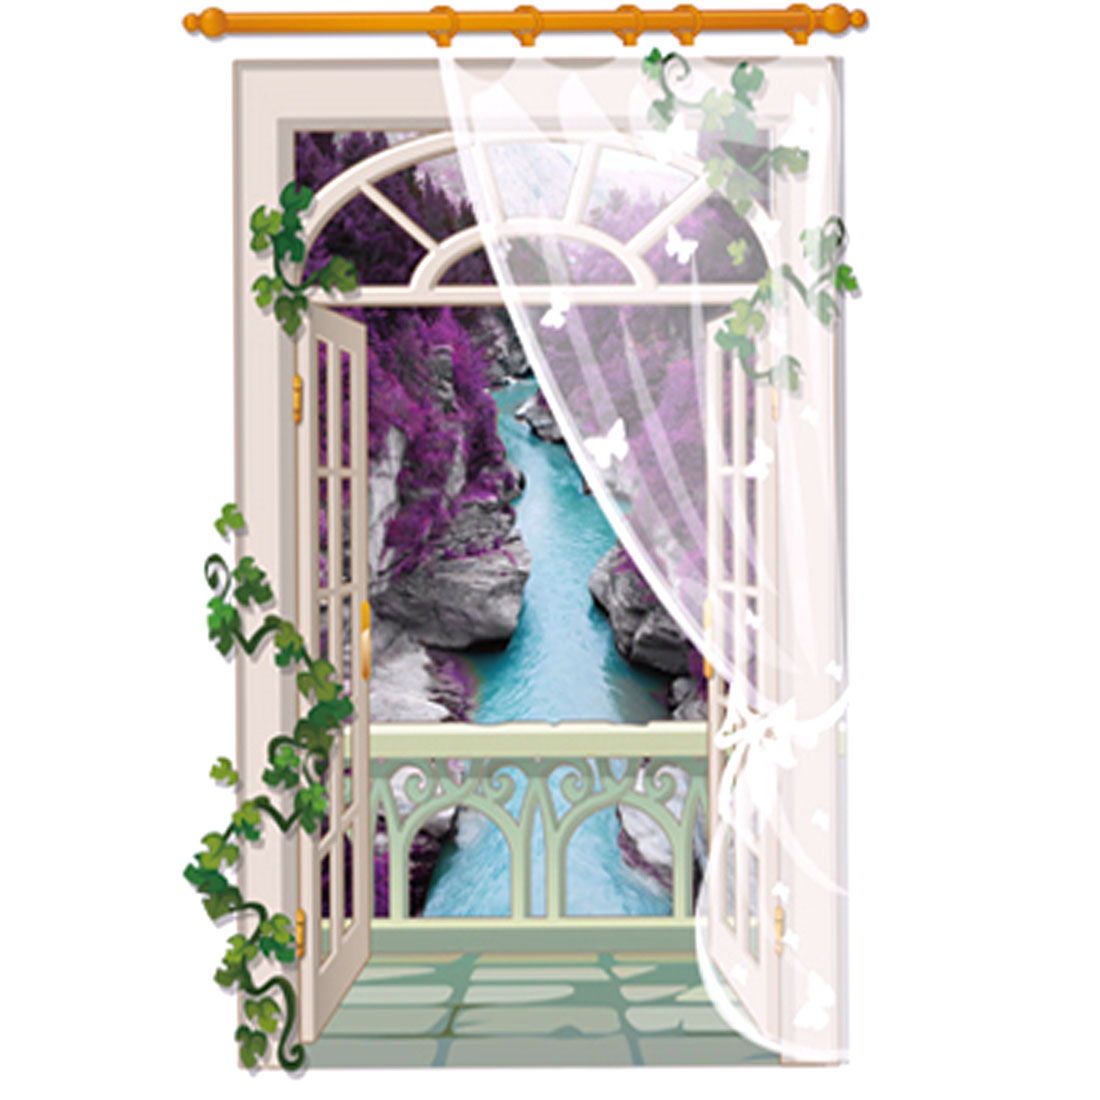 Home Living Room 3D Window Scene DIY Decorative Self Adhesive Wall Sticker Decor